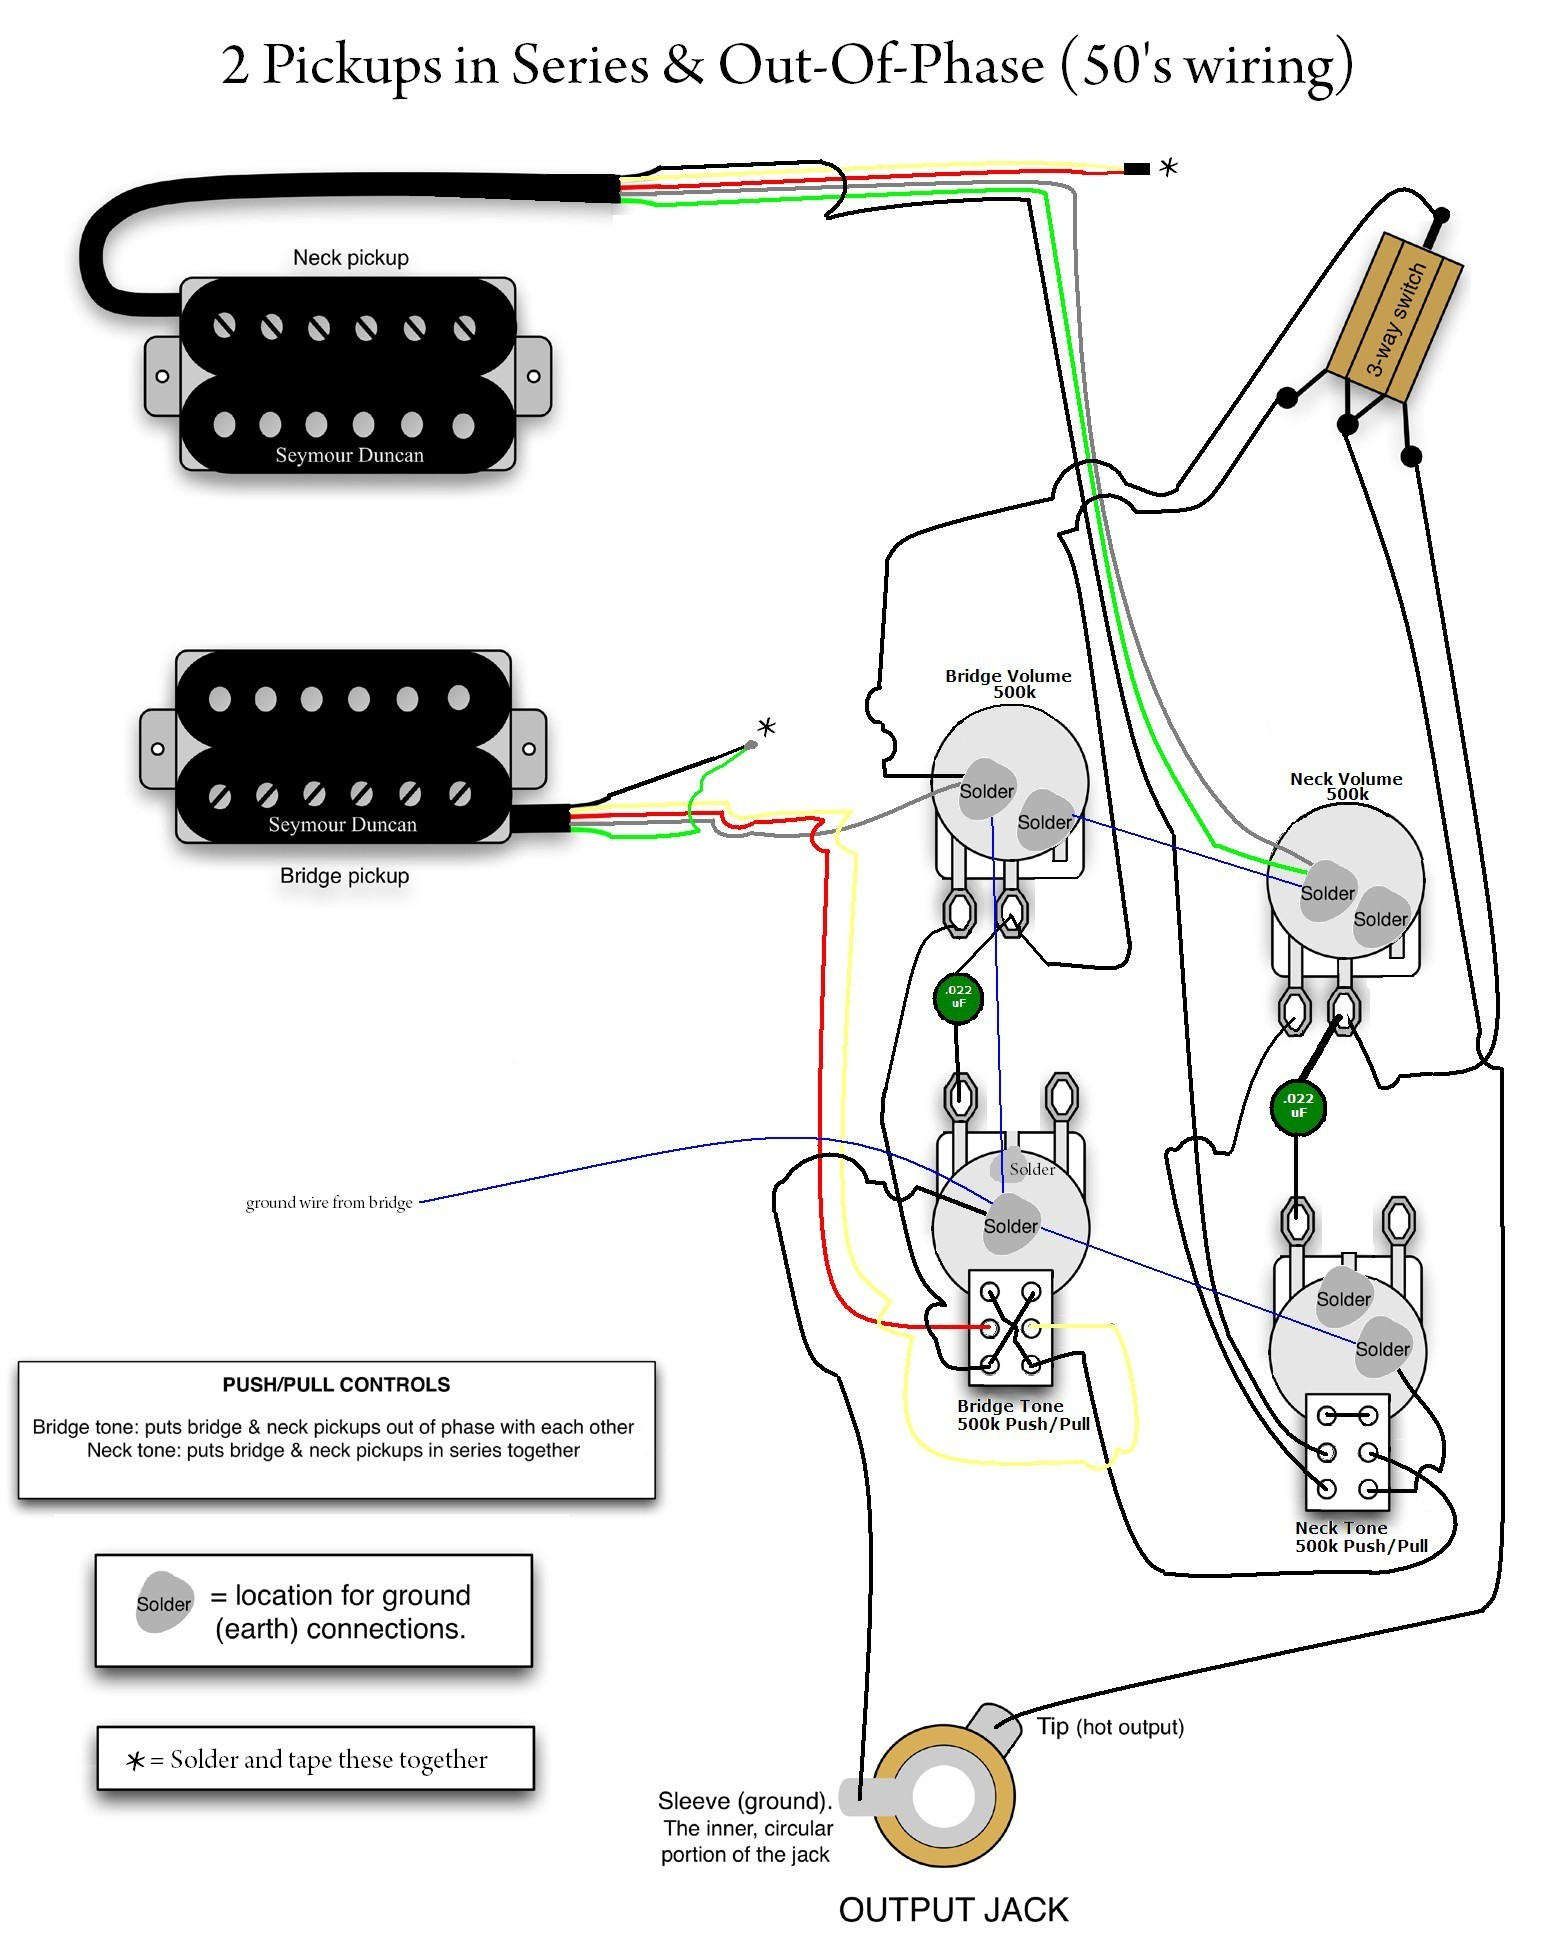 les paul coil tap wiring diagram schematic diagram Paul Soltero push pull coil tap wiring diagram wiring diagram dean soltero wiring diagram sg modern wiring